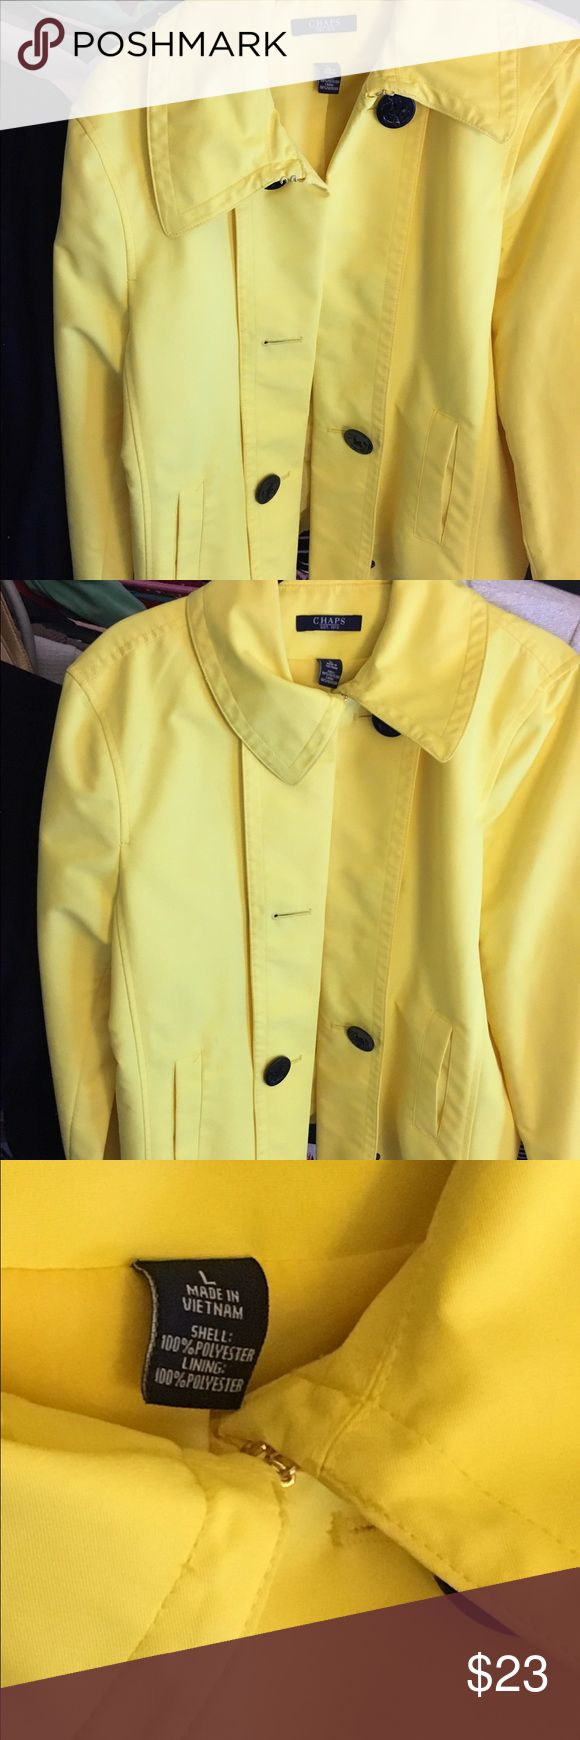 Short rain coat Short rain coat in excellent condition looks great on. Has pockets Chaps Jackets & Coats Trench Coats